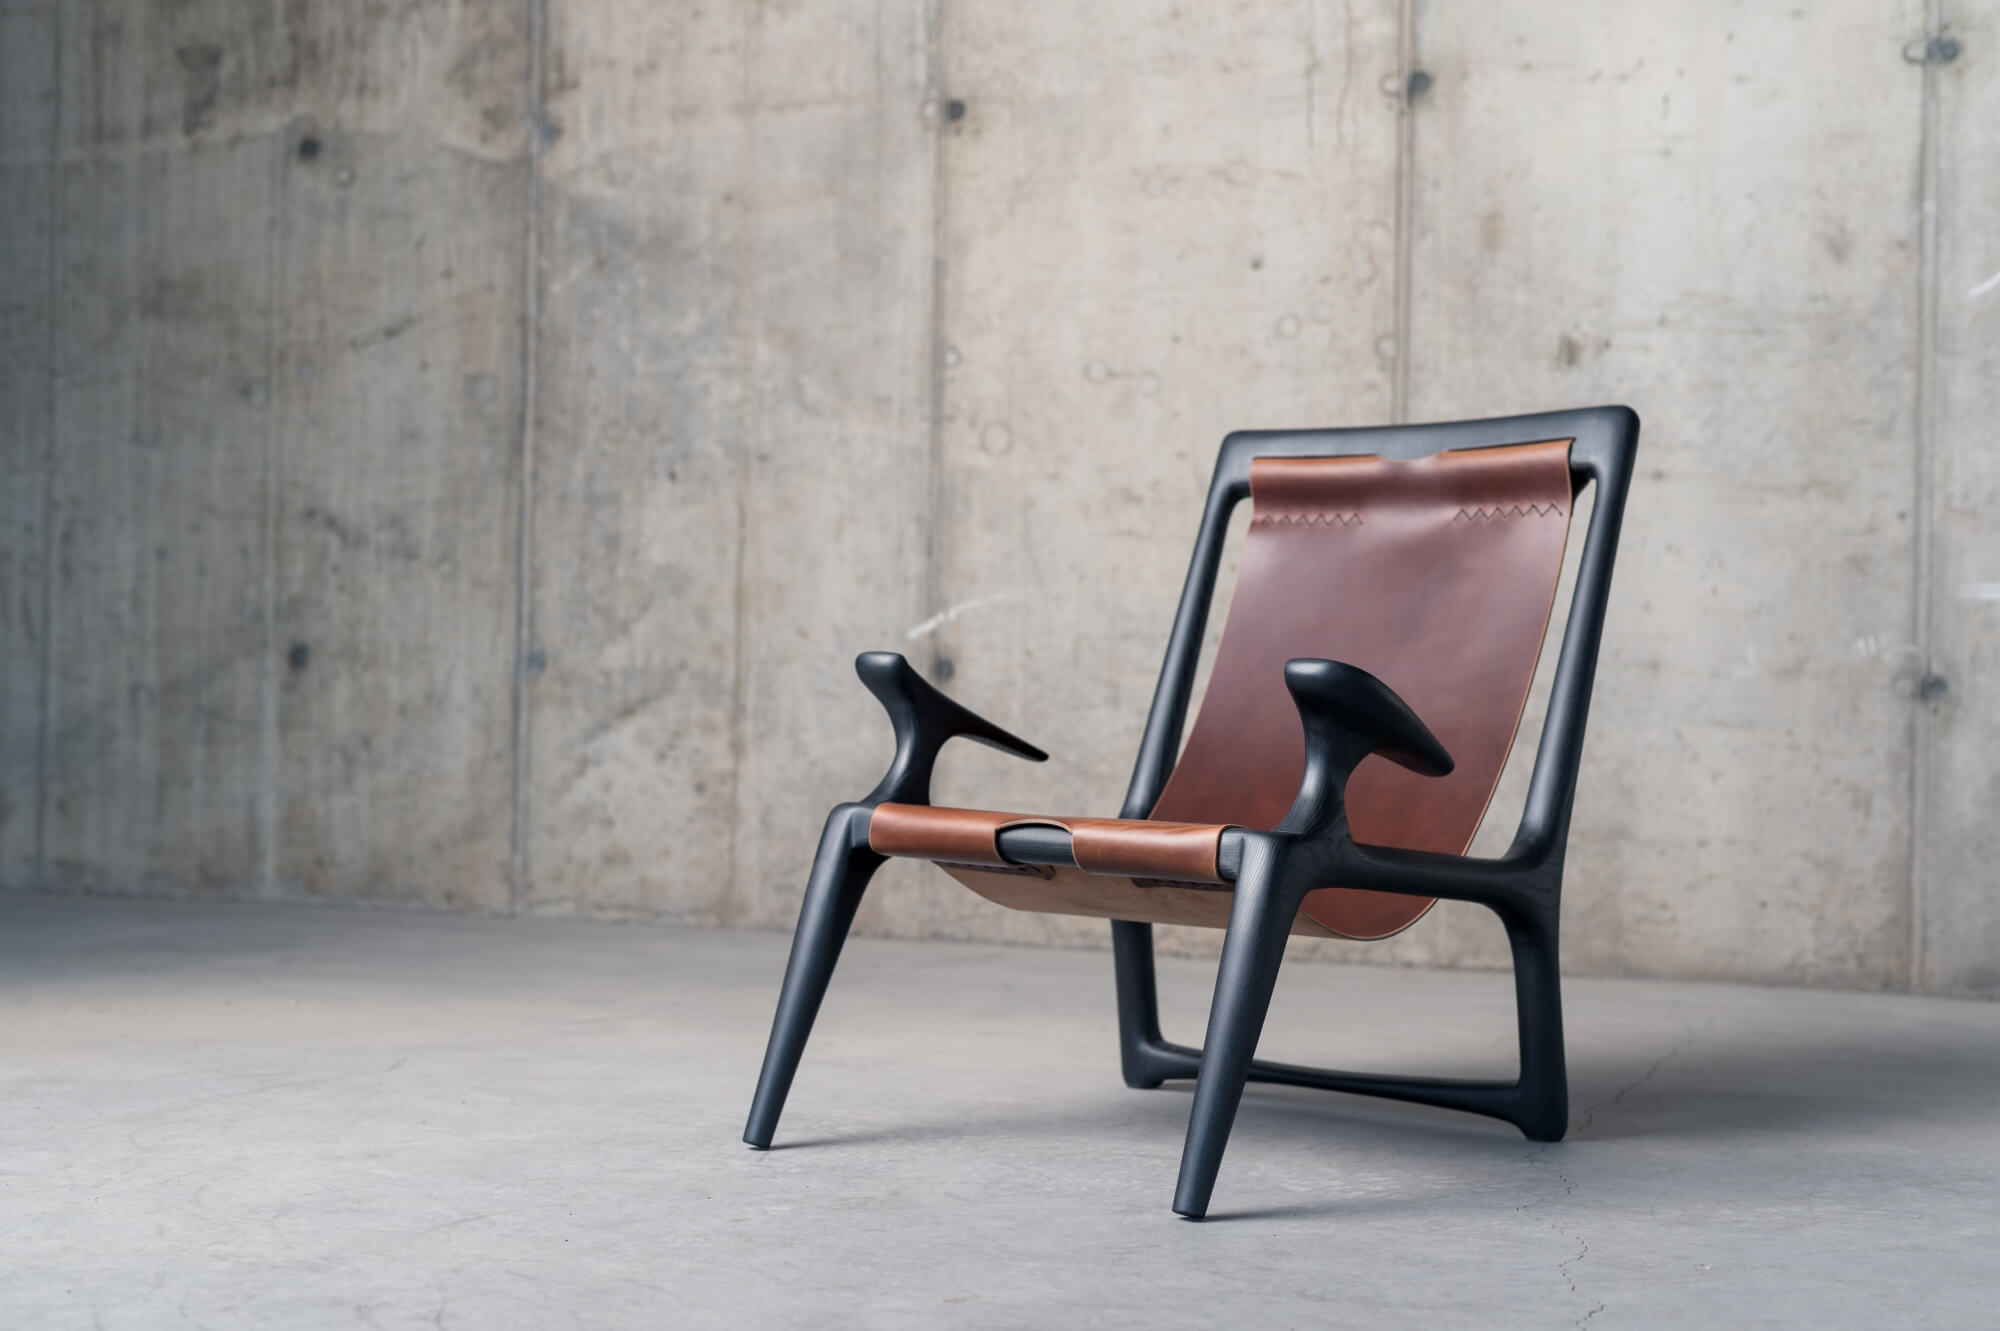 Custom chair made out of leather and wood.